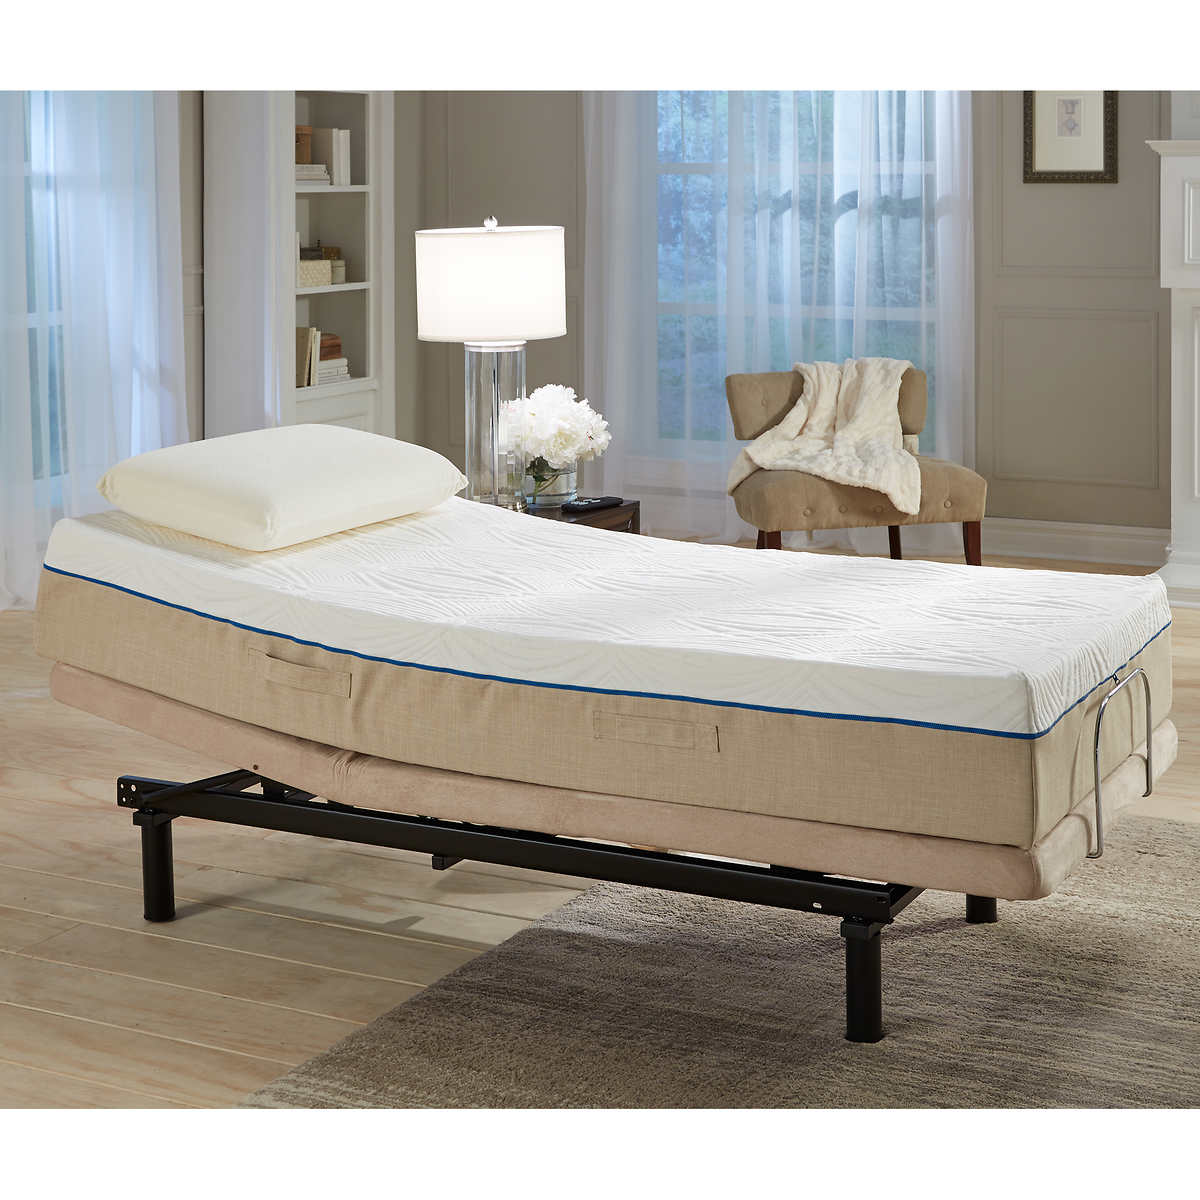 Twin size sleep number bed prices - Sleep Science Carina 11 Twin Xl Gel Memory Foam Mattress With Adjustable Base